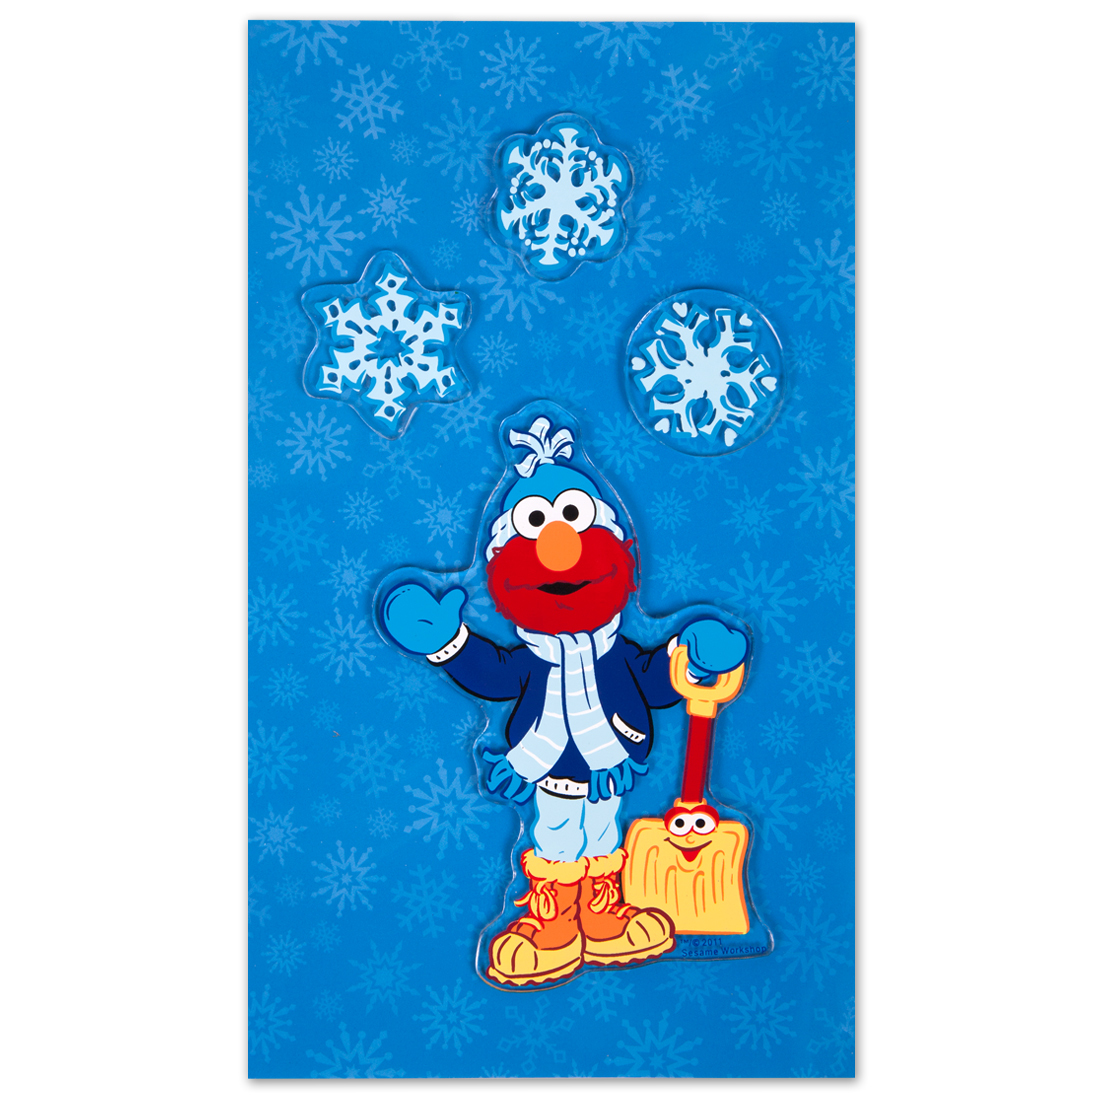 Sesame Street Elmo Window Cling